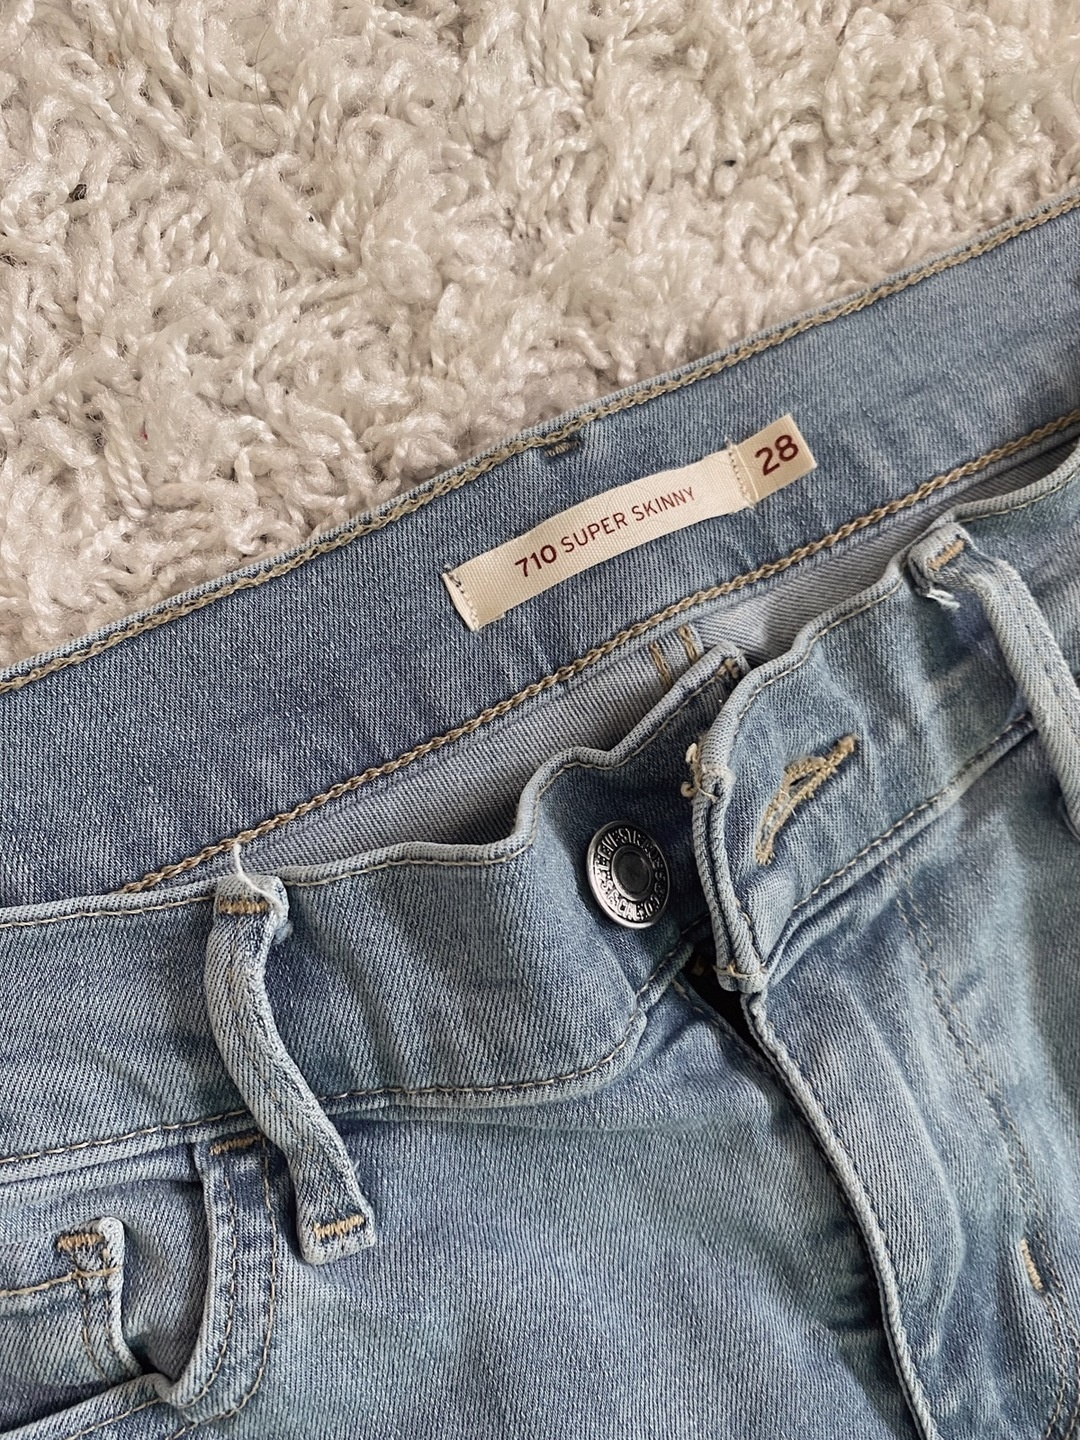 Damers bukser og jeans - LEVI'S photo 3